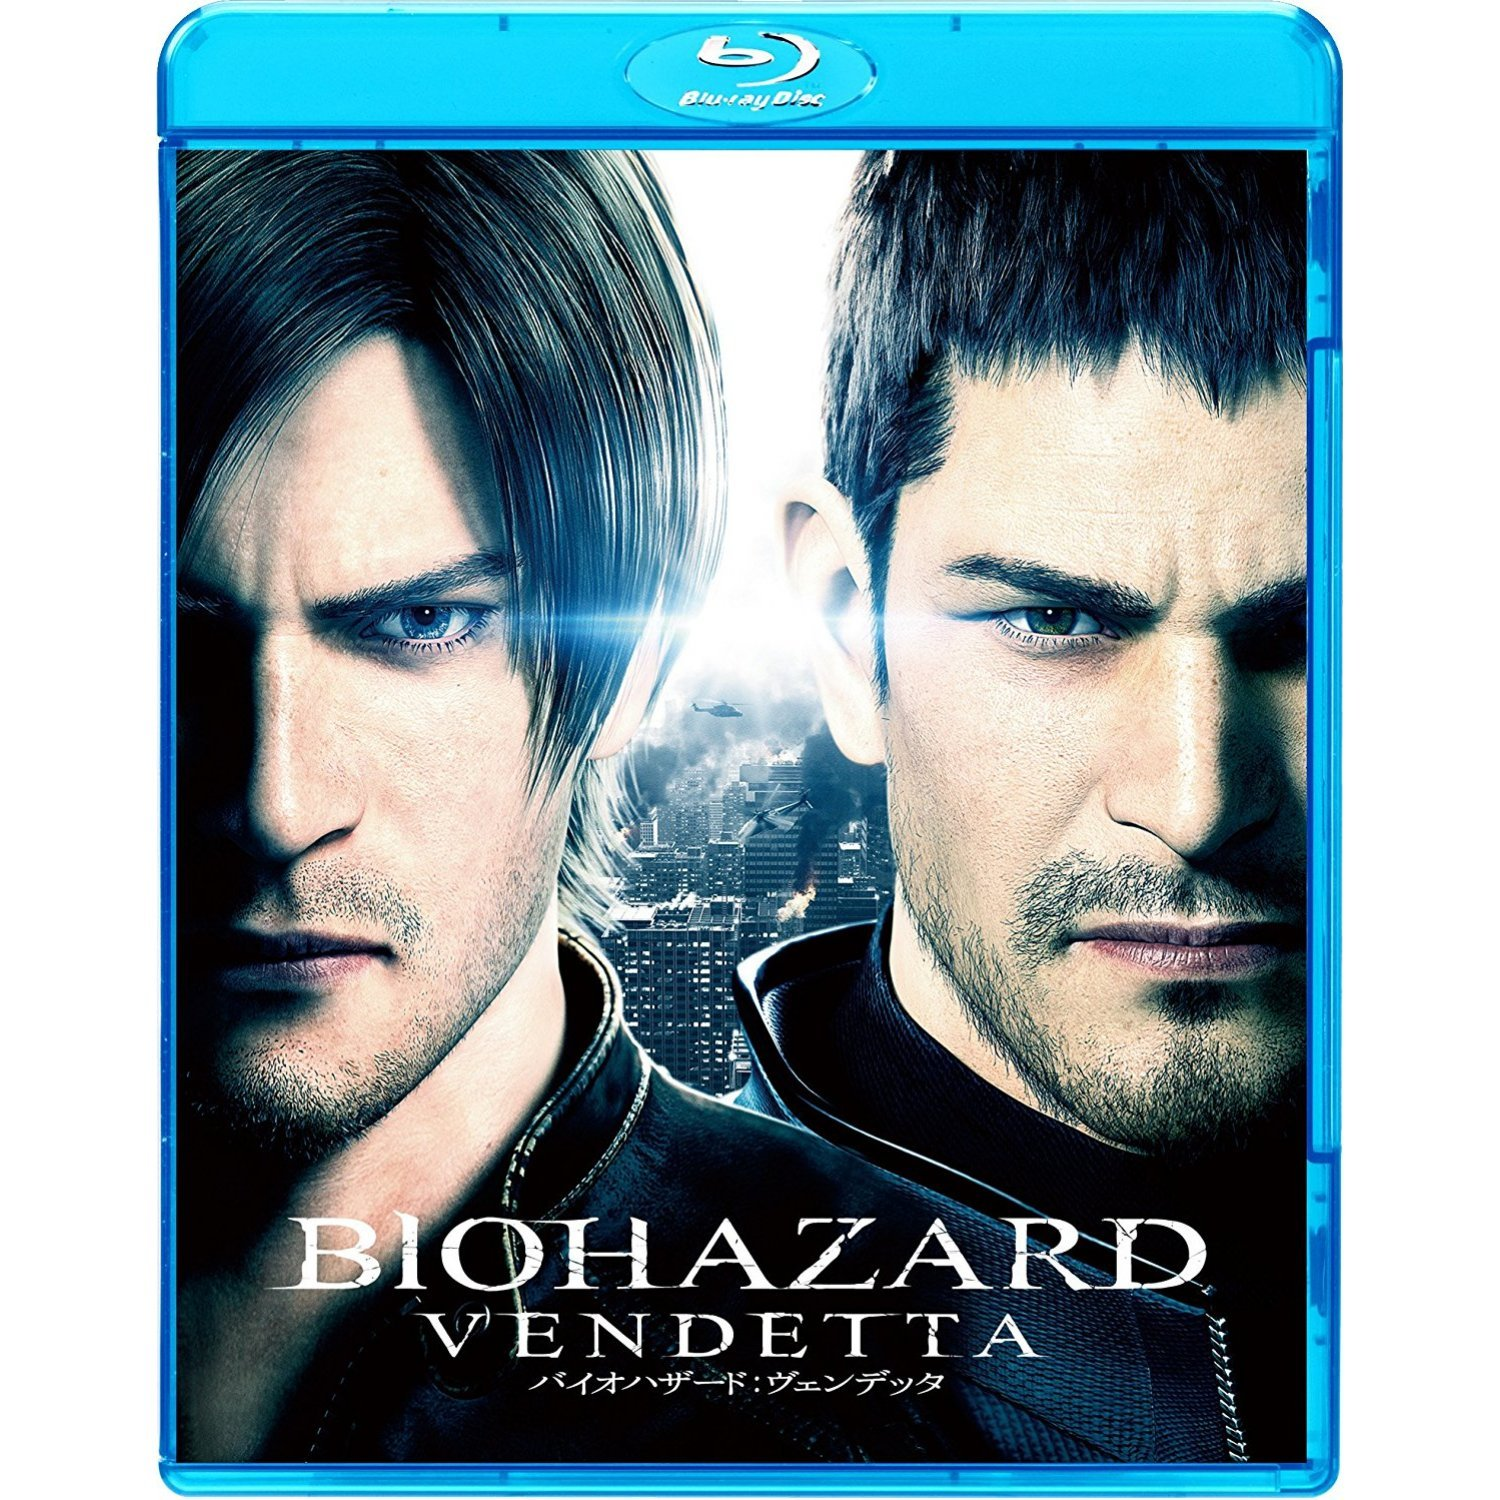 resident evil vendetta movie free download